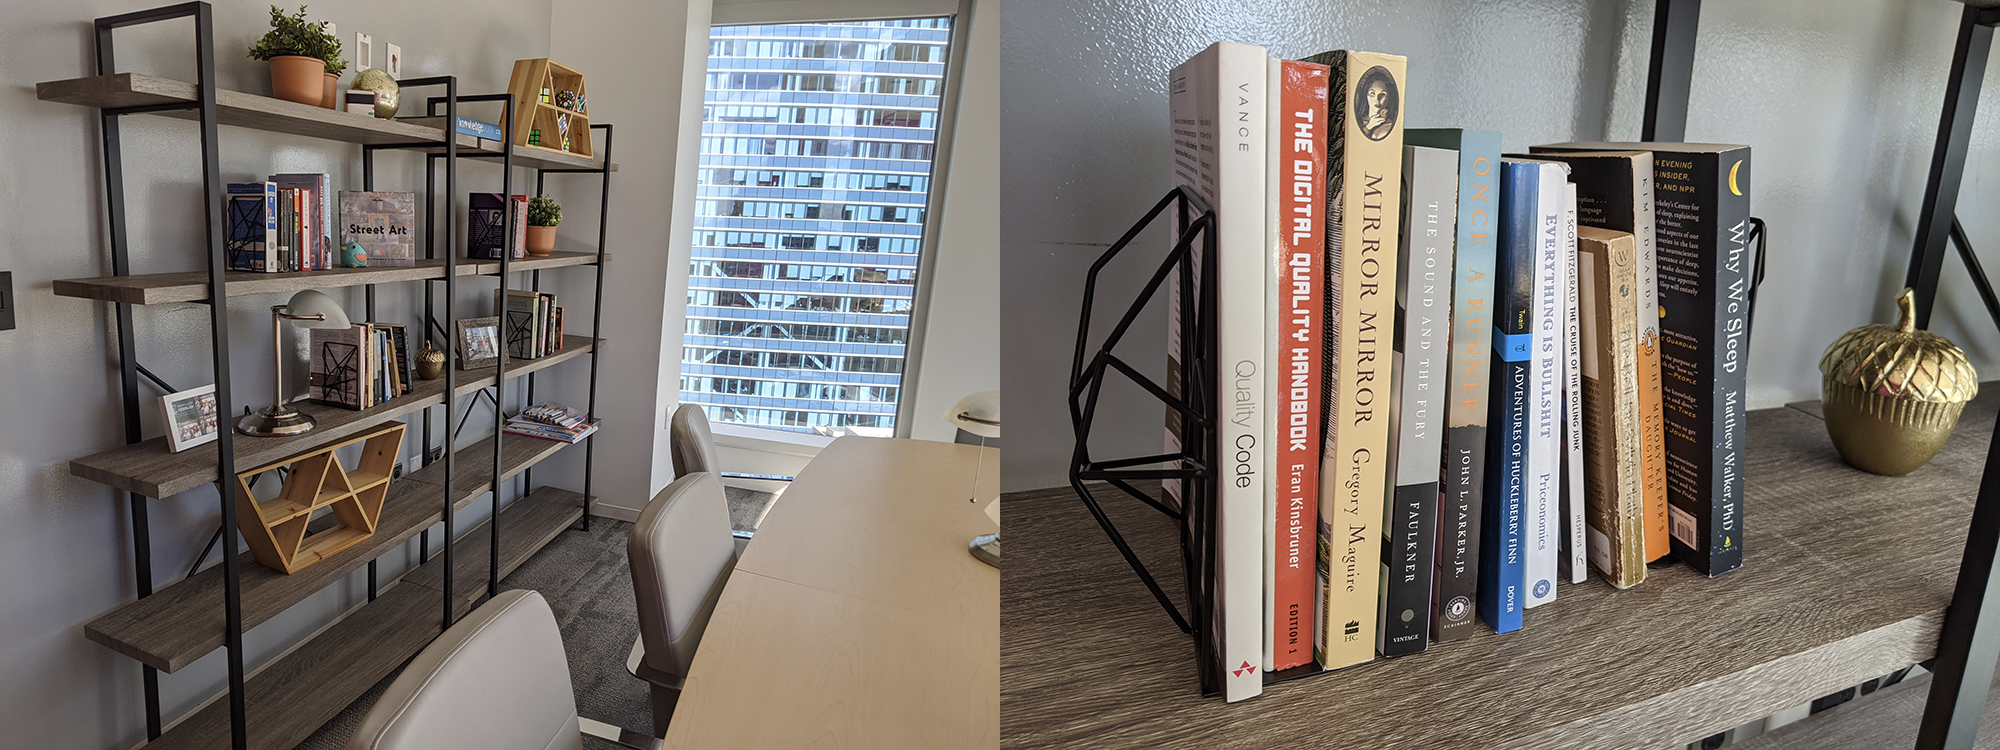 A conference table and a shelf against the wall with books, potted plants and framed pictures.